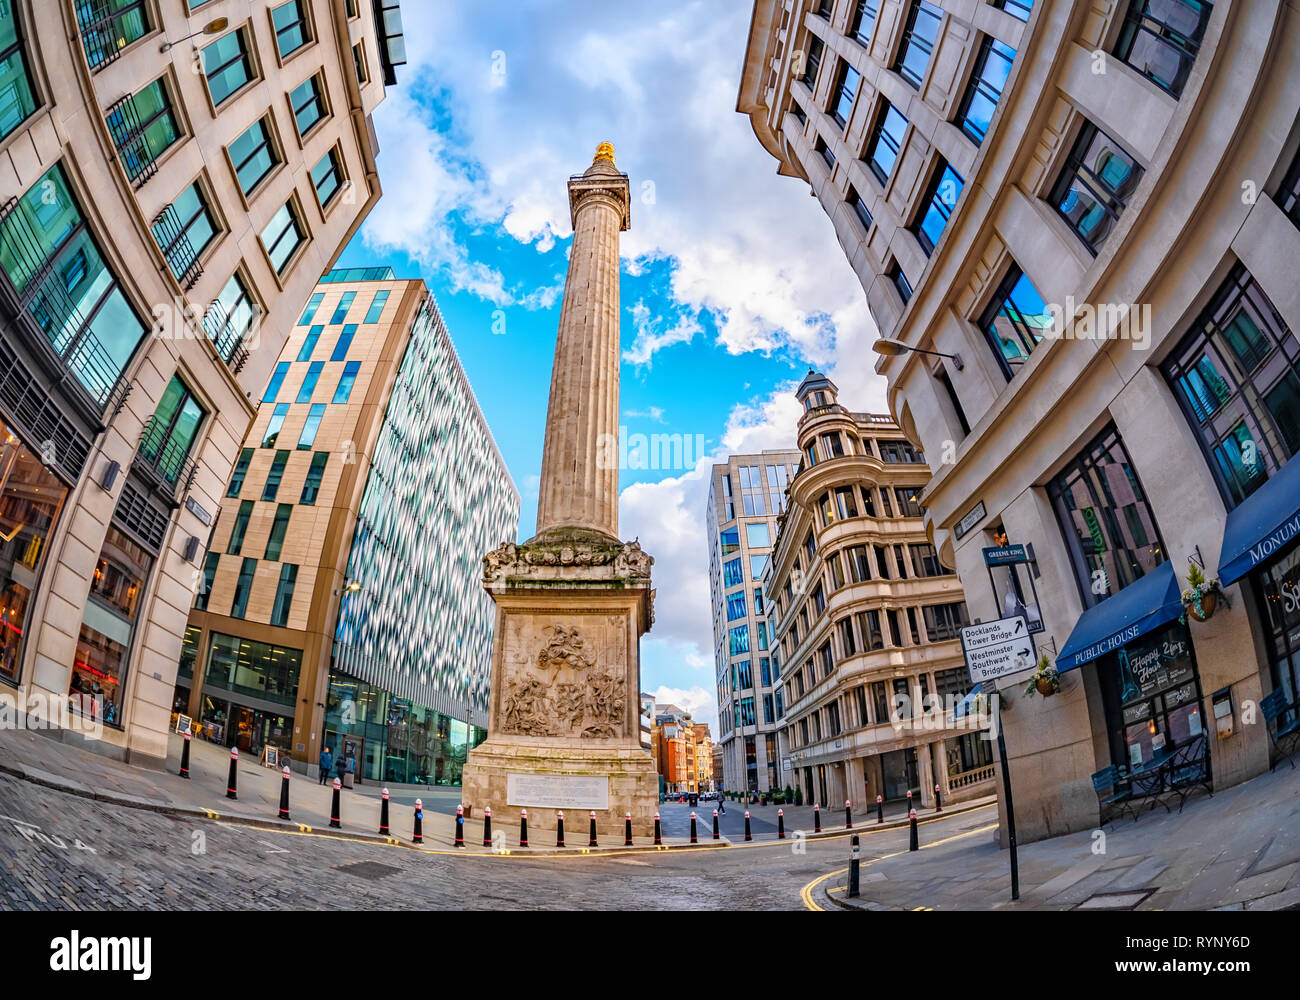 London, England, UK - March 10, 2019: Wide view of the famous British landmark The Monument to the Great Fire of London square, created by Christopher Stock Photo